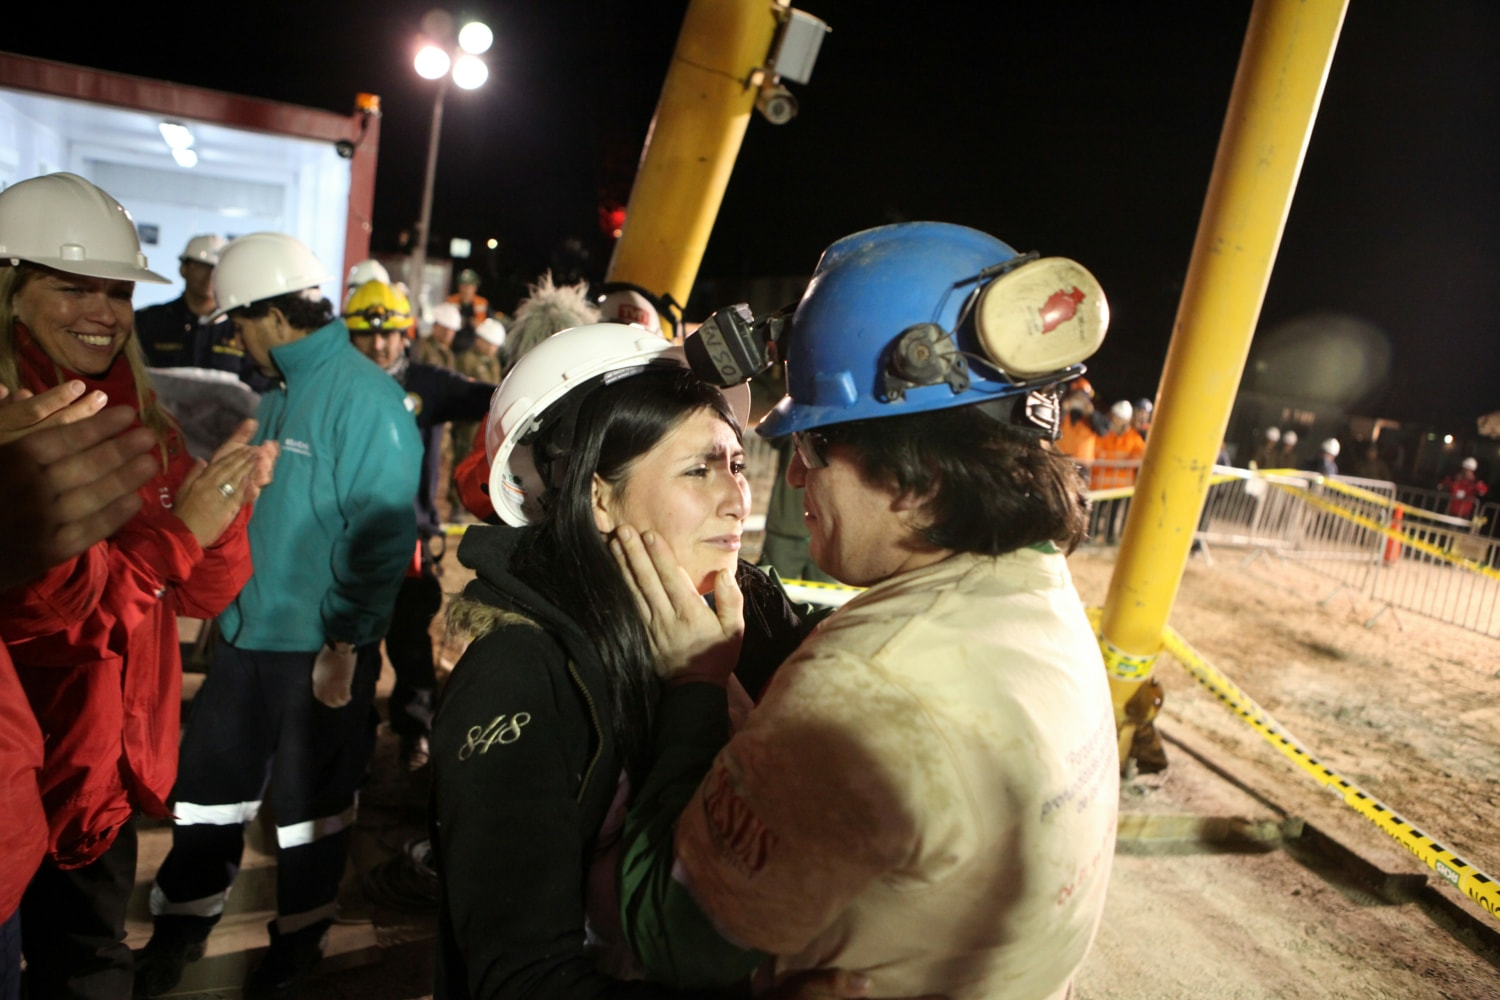 33 chilean miners trapped Just ask several dozen chilean workers rescued from a mine collapse harvard business school how 'teaming' saved 33 lives in the chilean mining disaster.